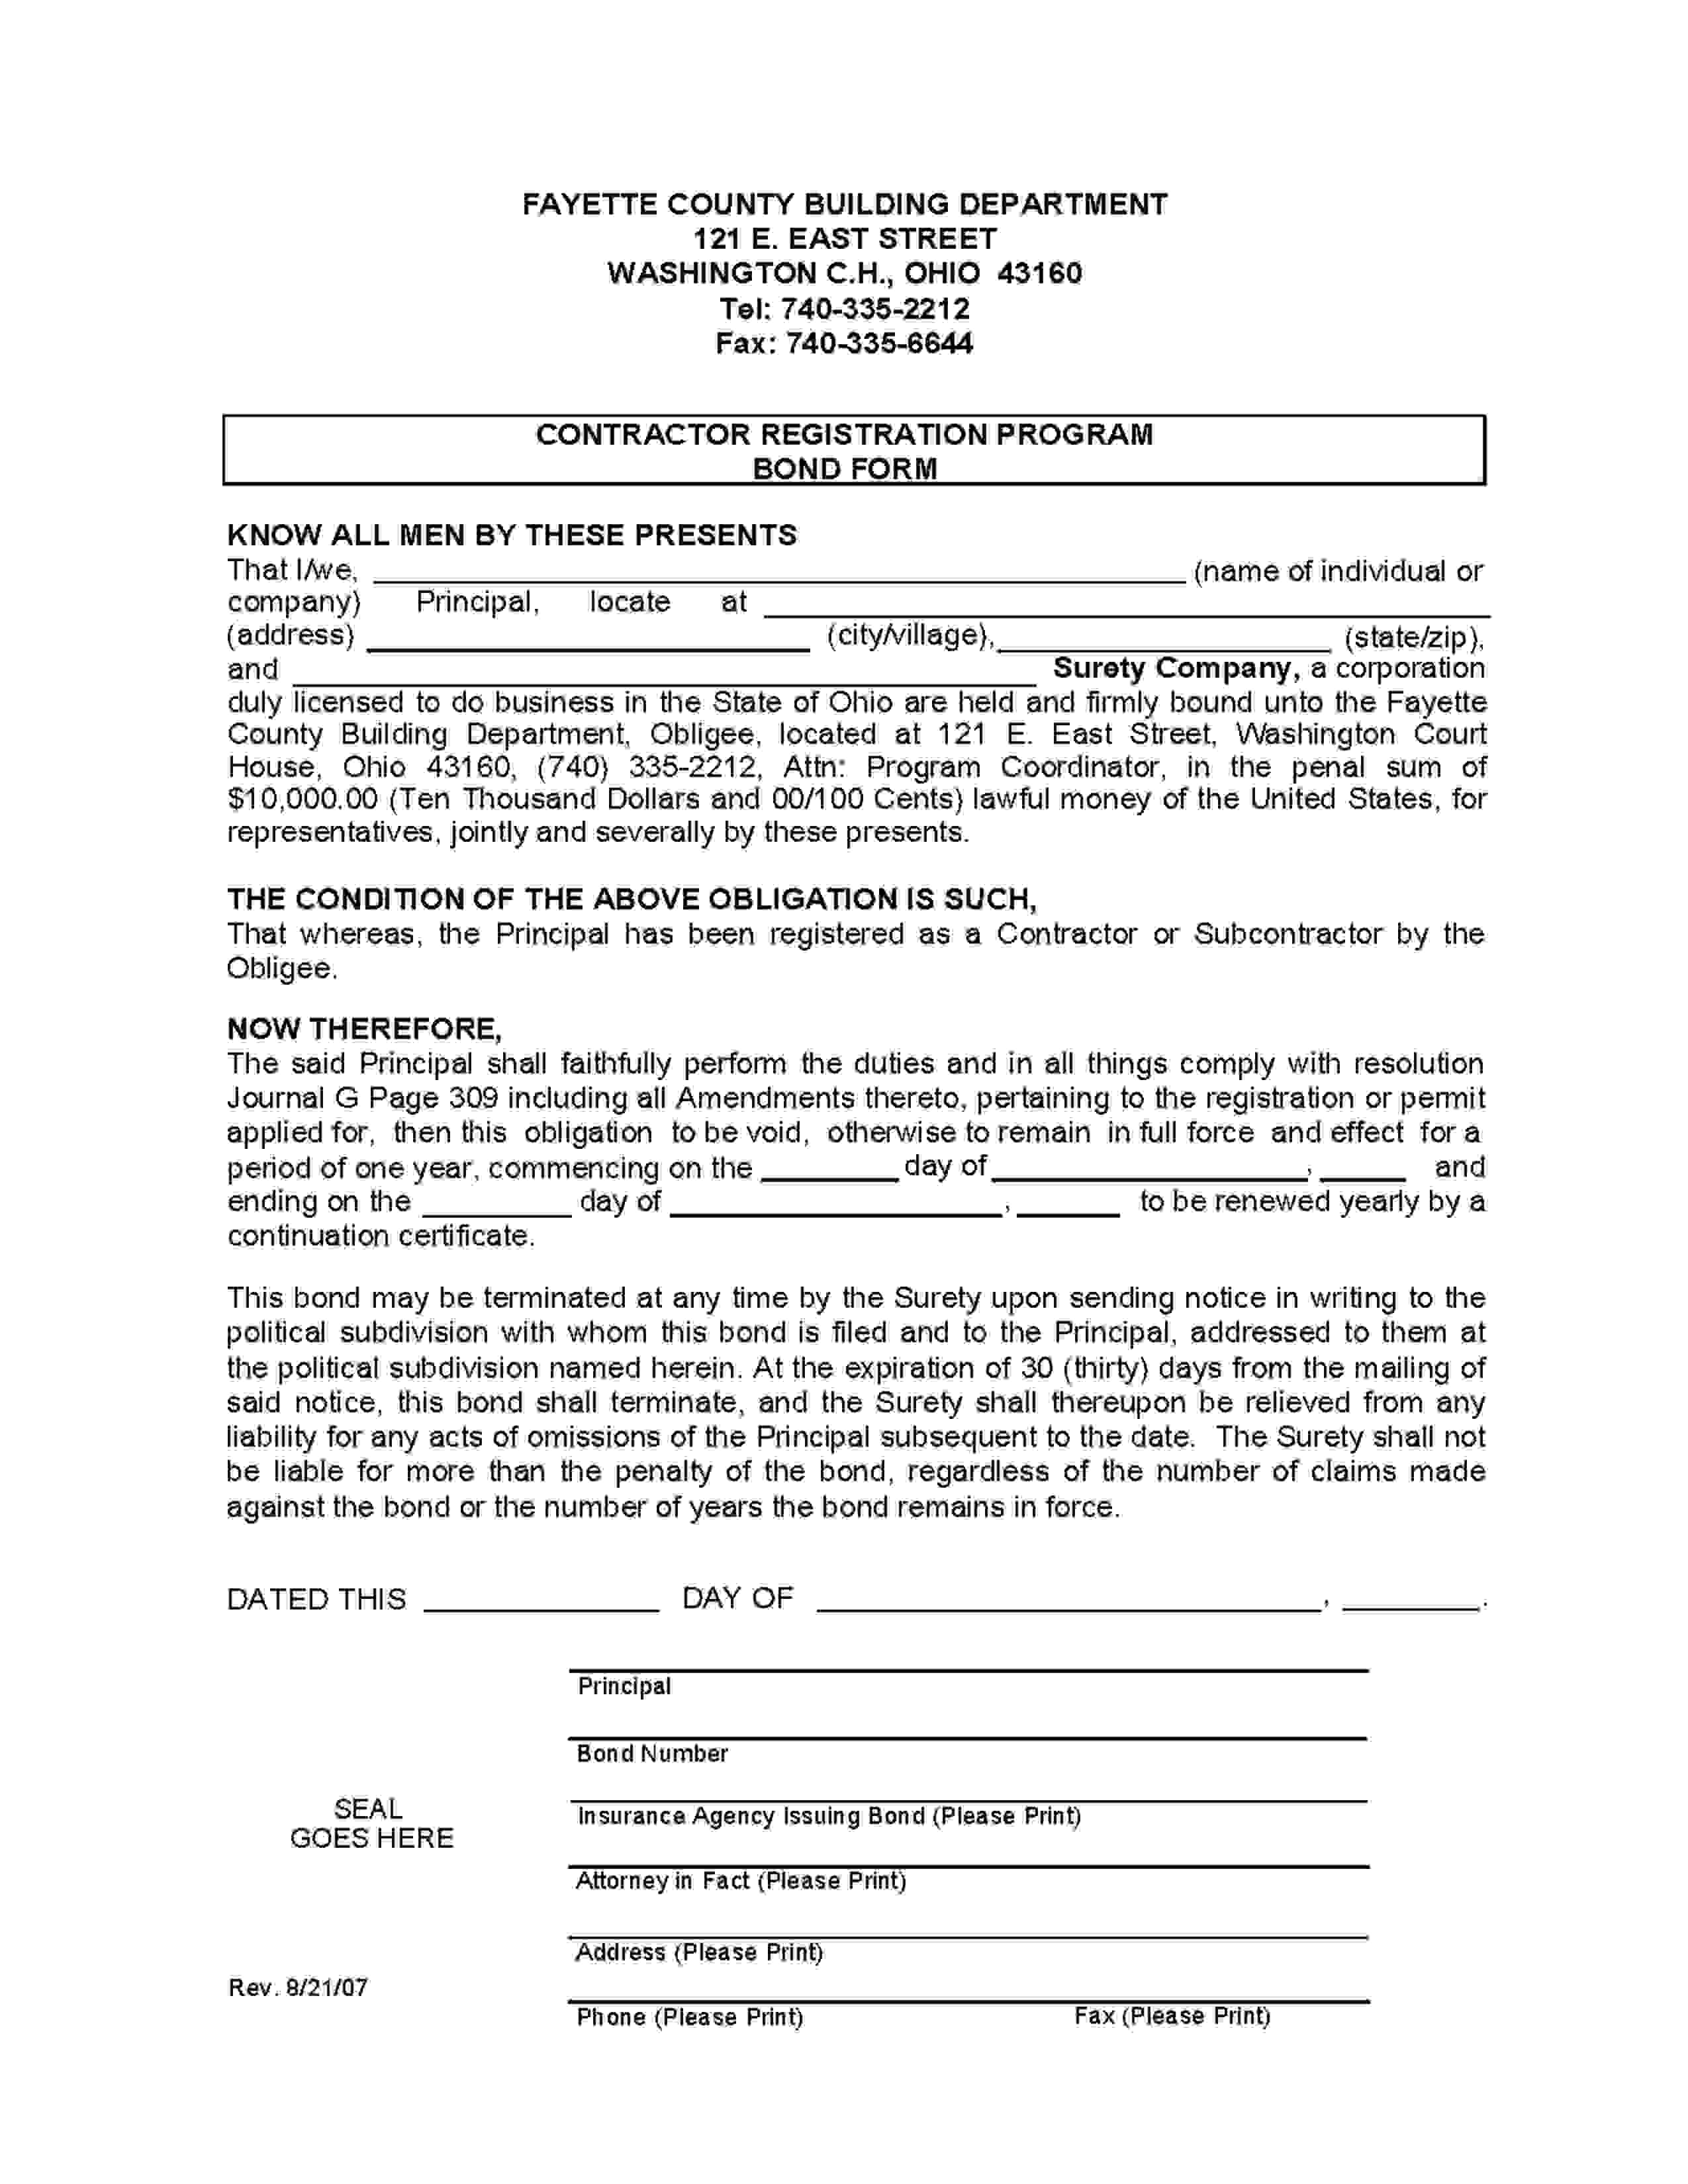 Fayette - County Contractor Registration sample image